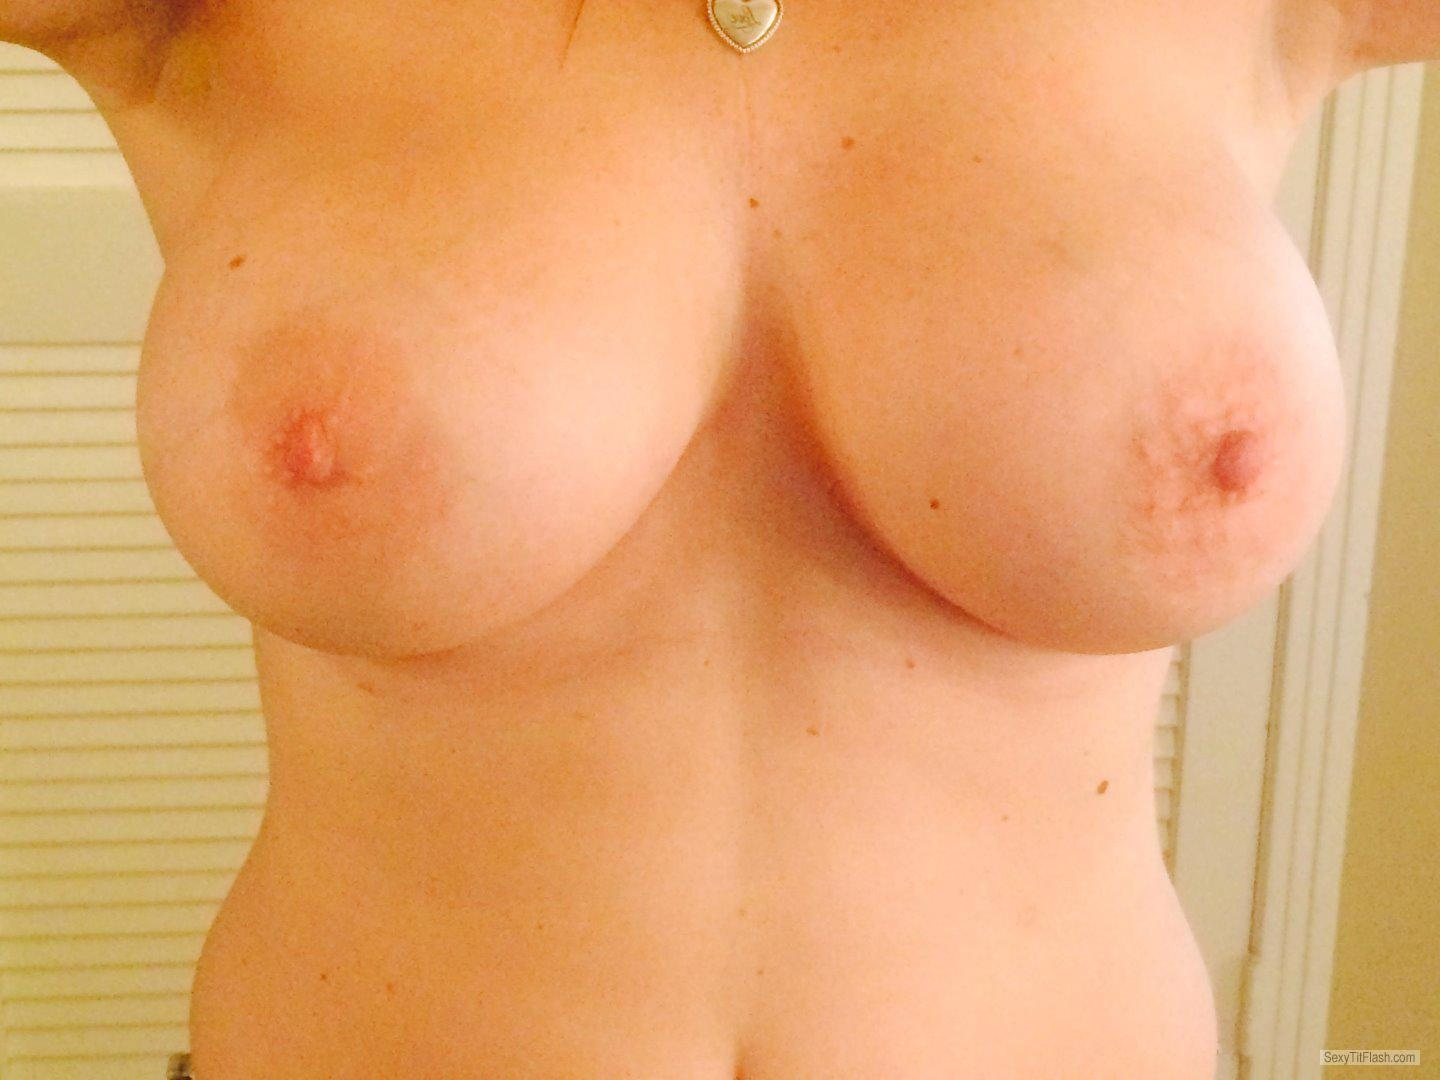 Tit Flash: Girlfriend's Big Tits (Selfie) - Hot GF from United States